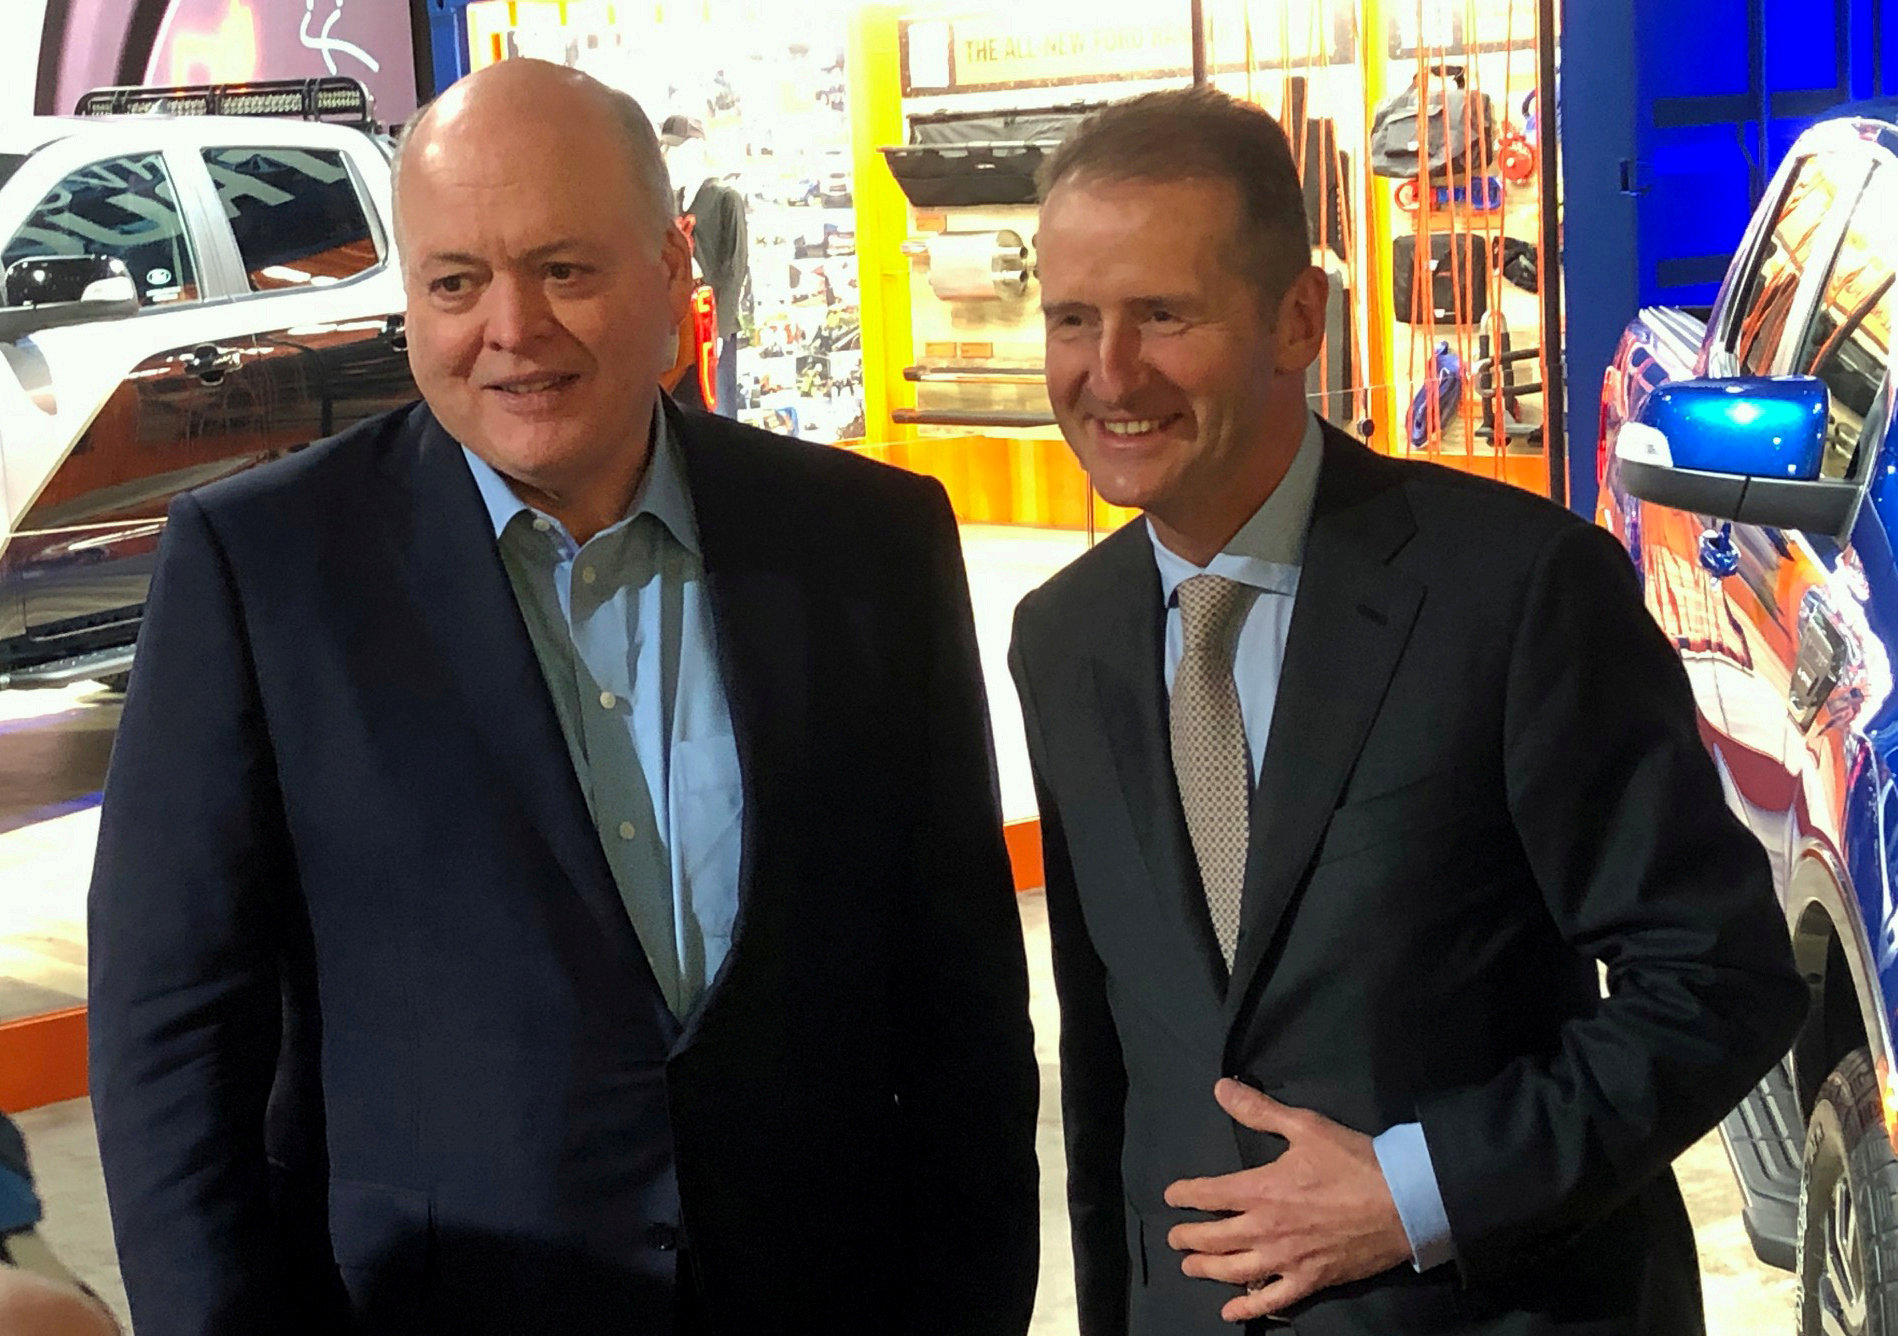 The president and CEO of Ford, Jim Hackett, poses with Volkswagen CEO Herbert Diess at the North American International Auto Show in Detroit on Monday. | REUTERS